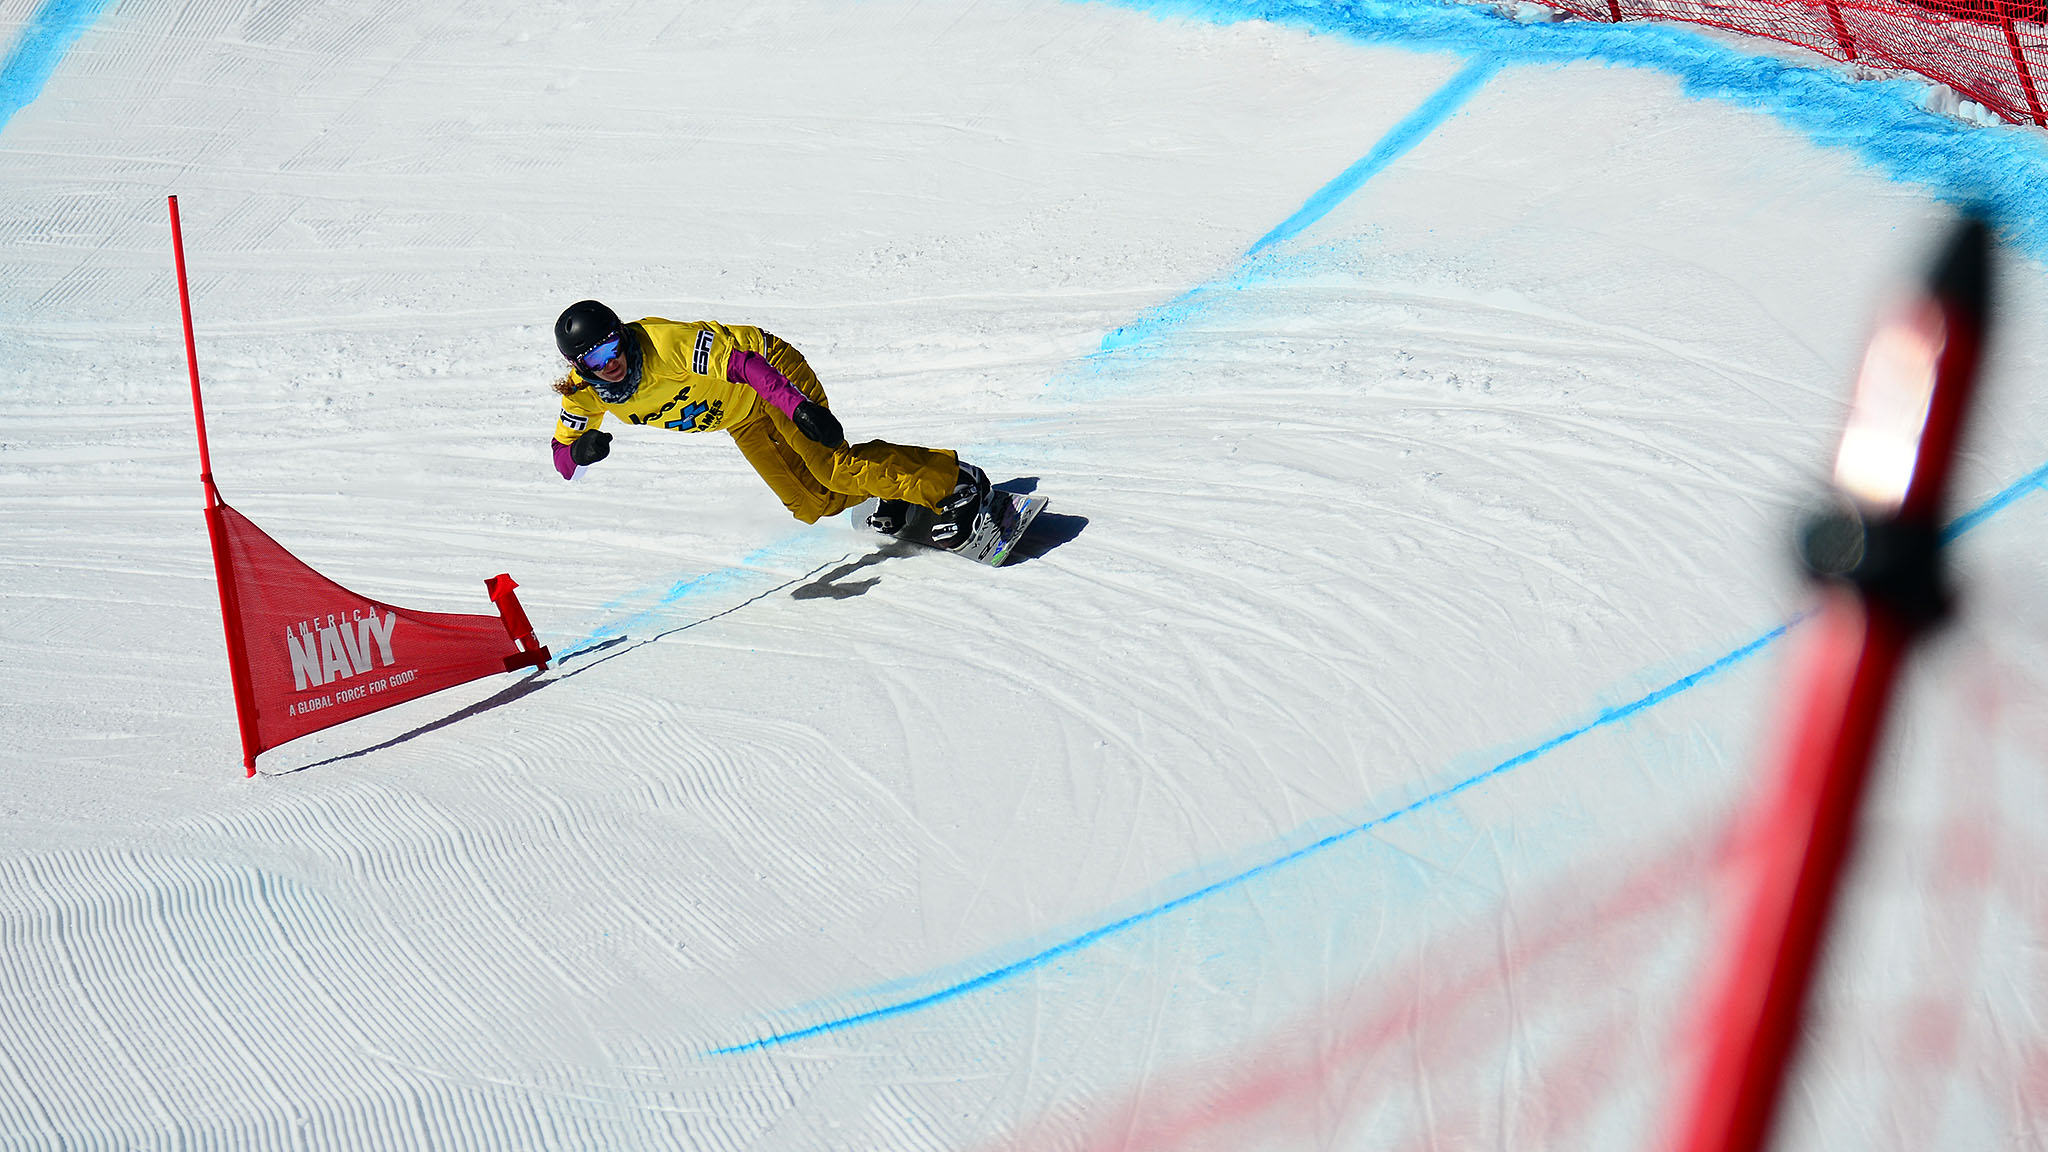 Lindsey Jacobellis won her eighth gold, the most by a female athlete in X Games history.